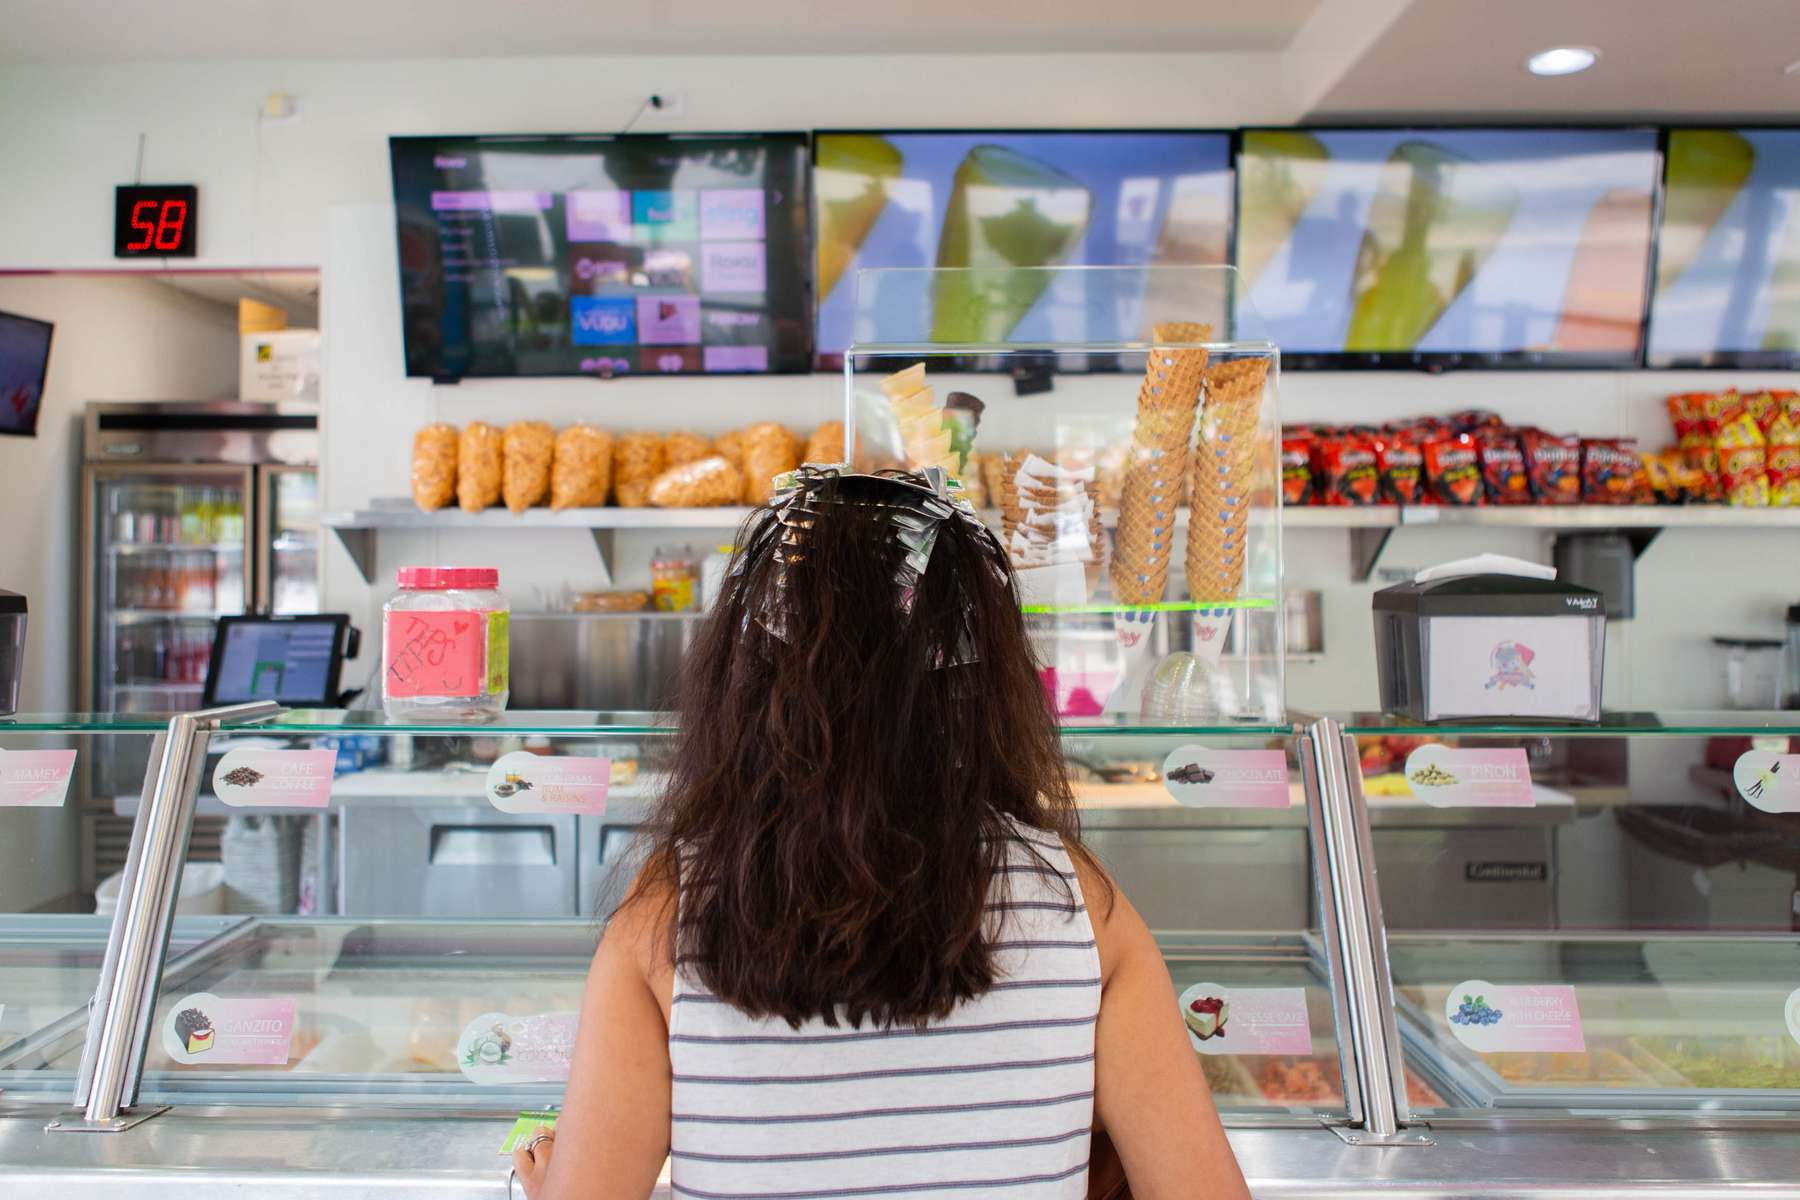 Sona Gajiwala Jones, Business Development, 35.Sona ordering ice cream while she is waiting for her hair to be finished.